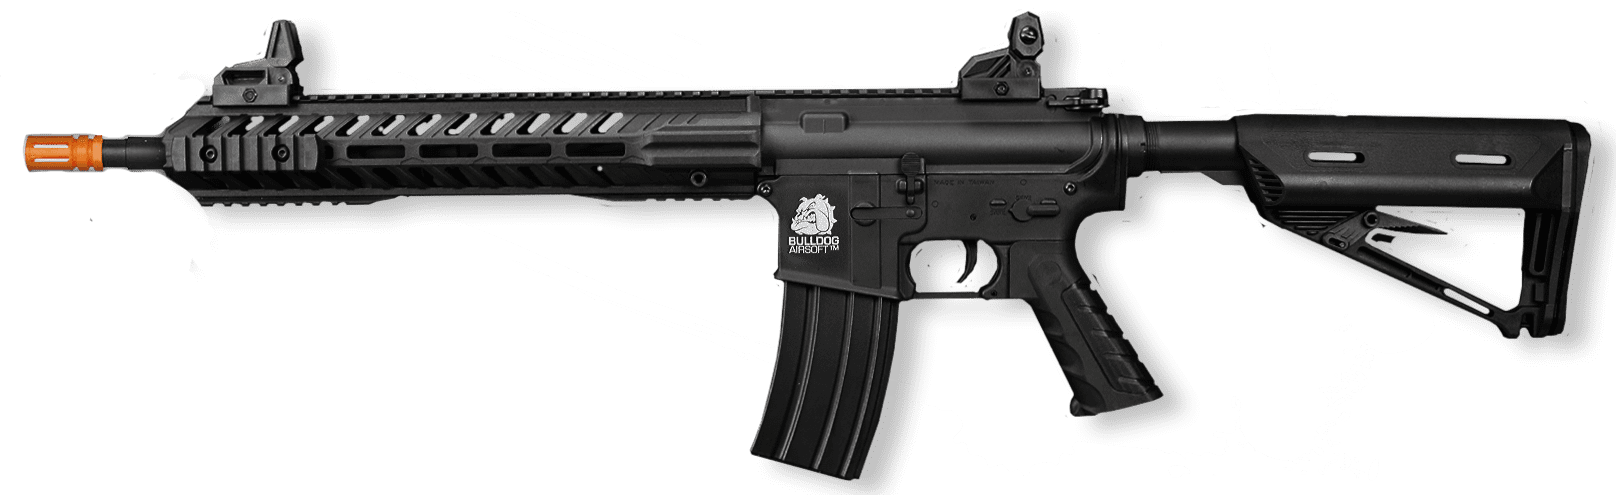 bulldog airsoft rifle aeg electic fps powerful